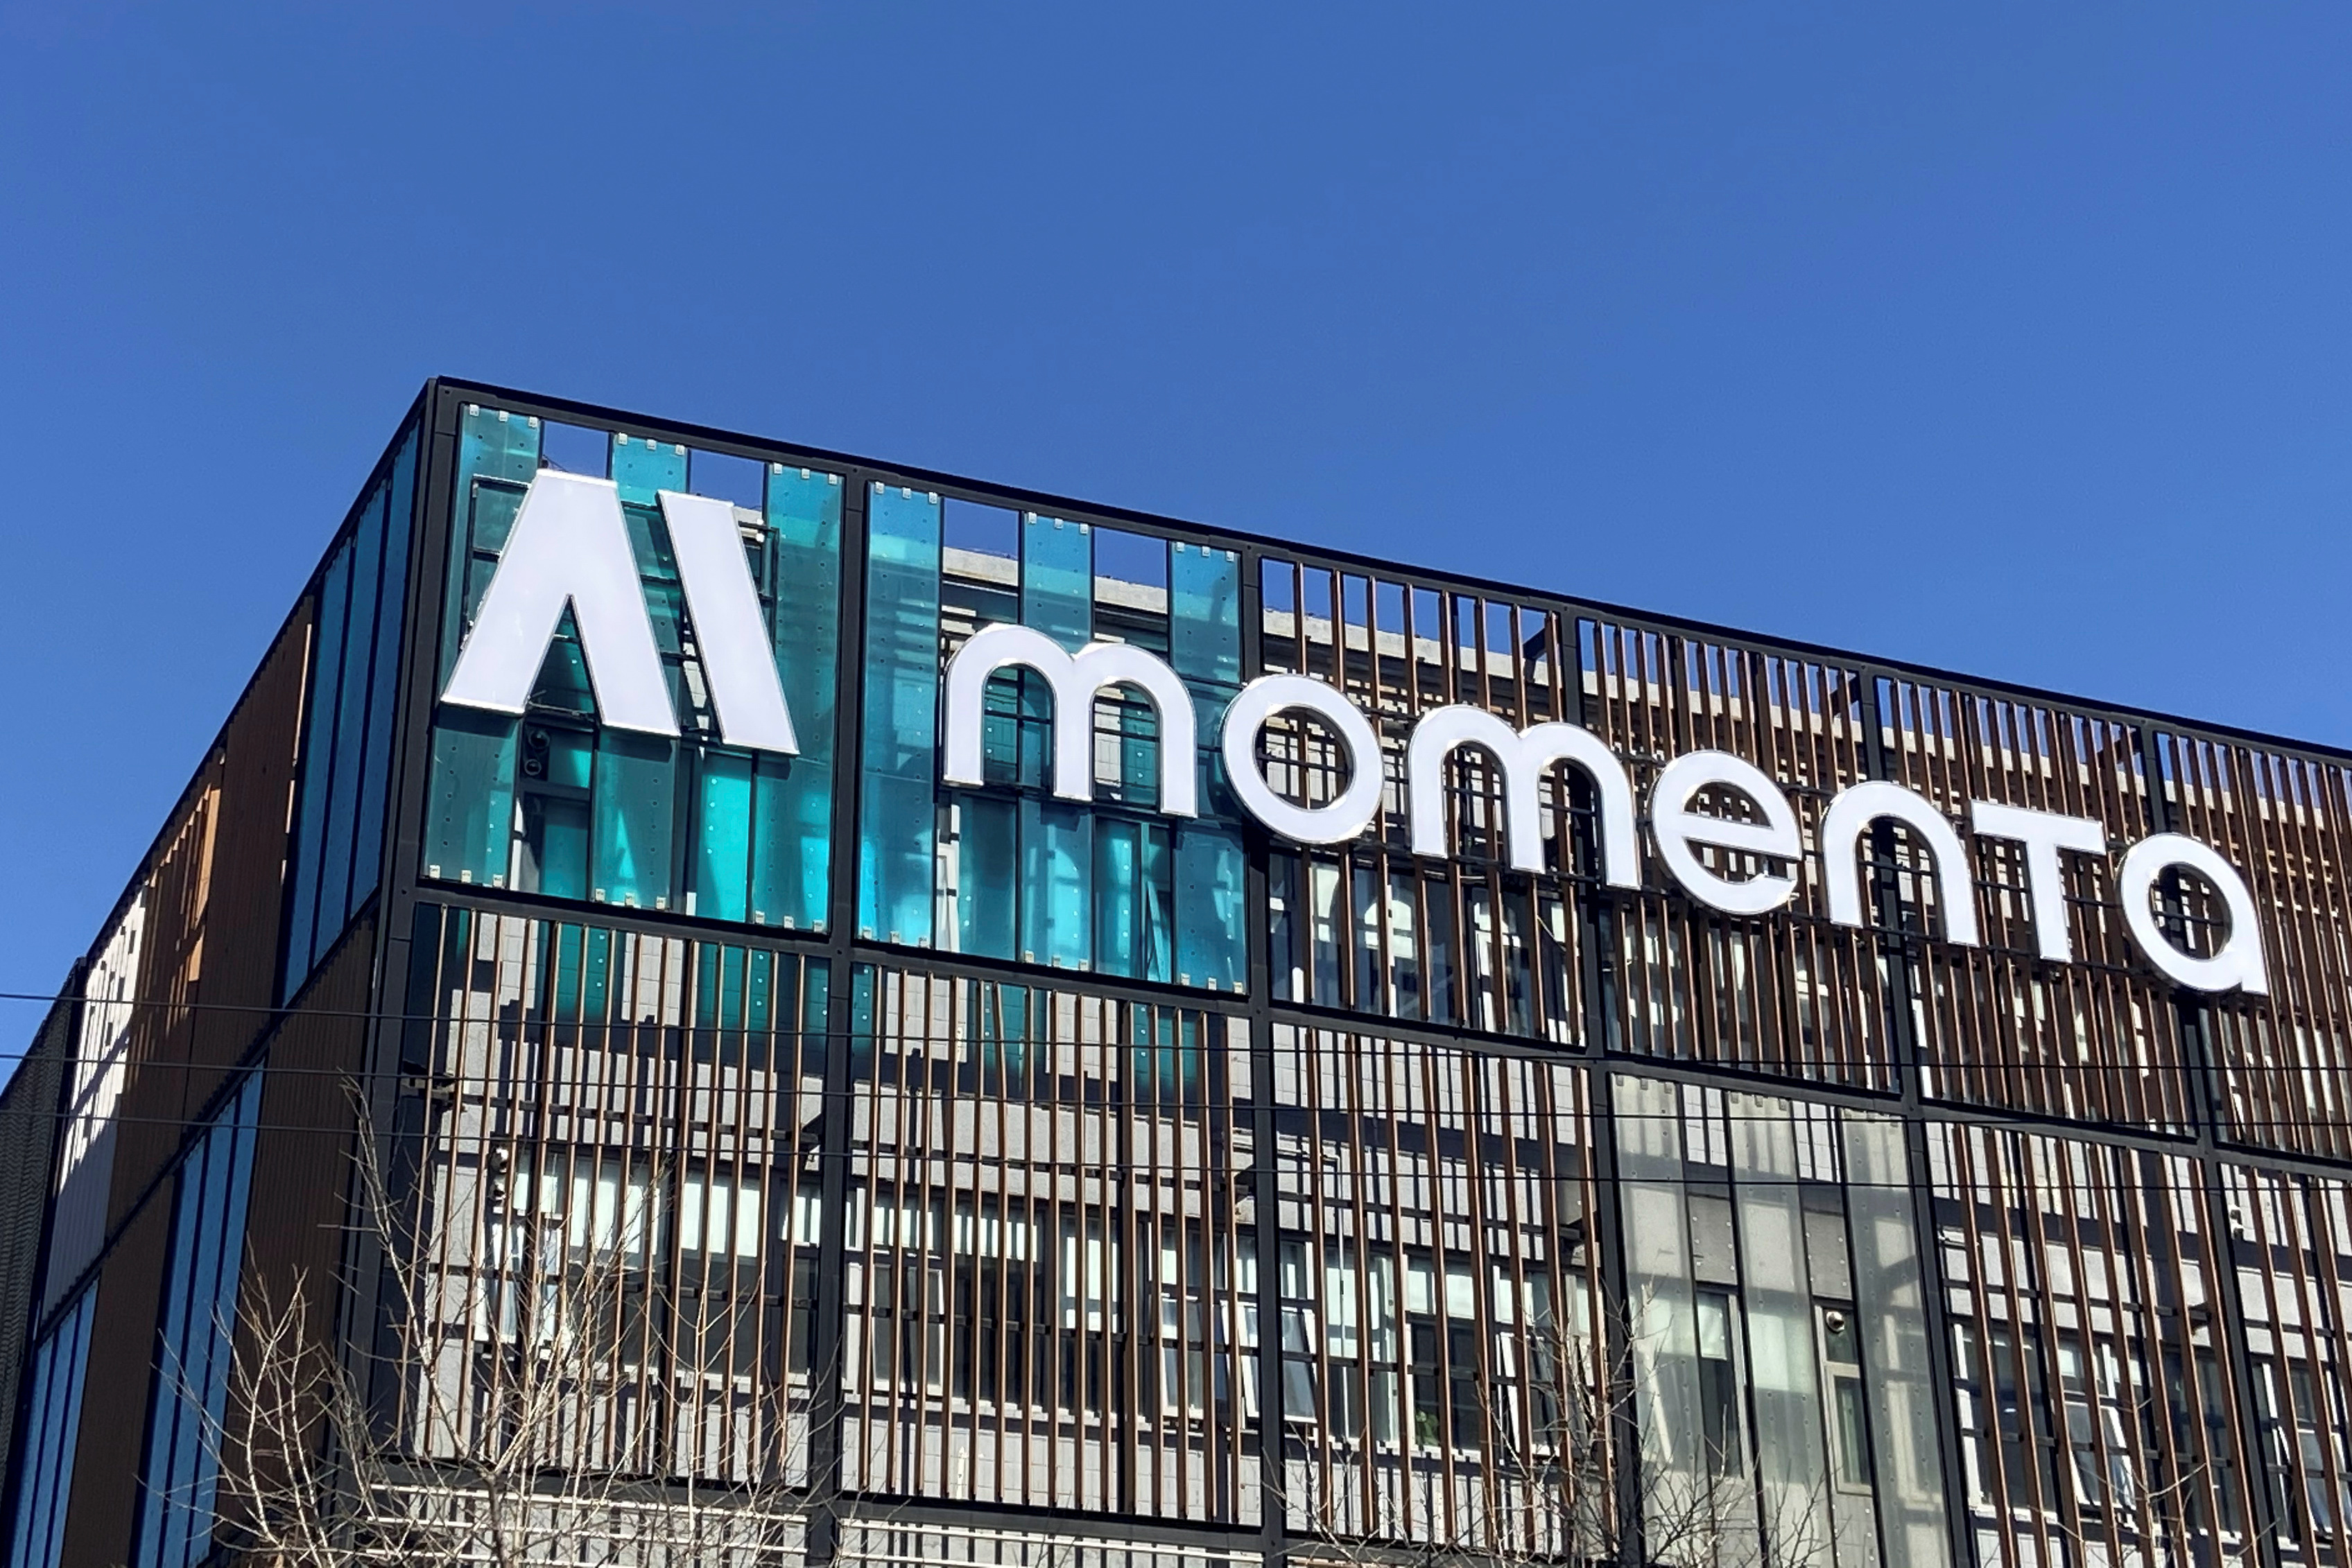 The company logo of Chinese autonomous driving startup Momenta is seen on the facade of its office building in Beijing, China March 13, 2020. Picture taken March 13, 2020. REUTERS/Yilei Sun